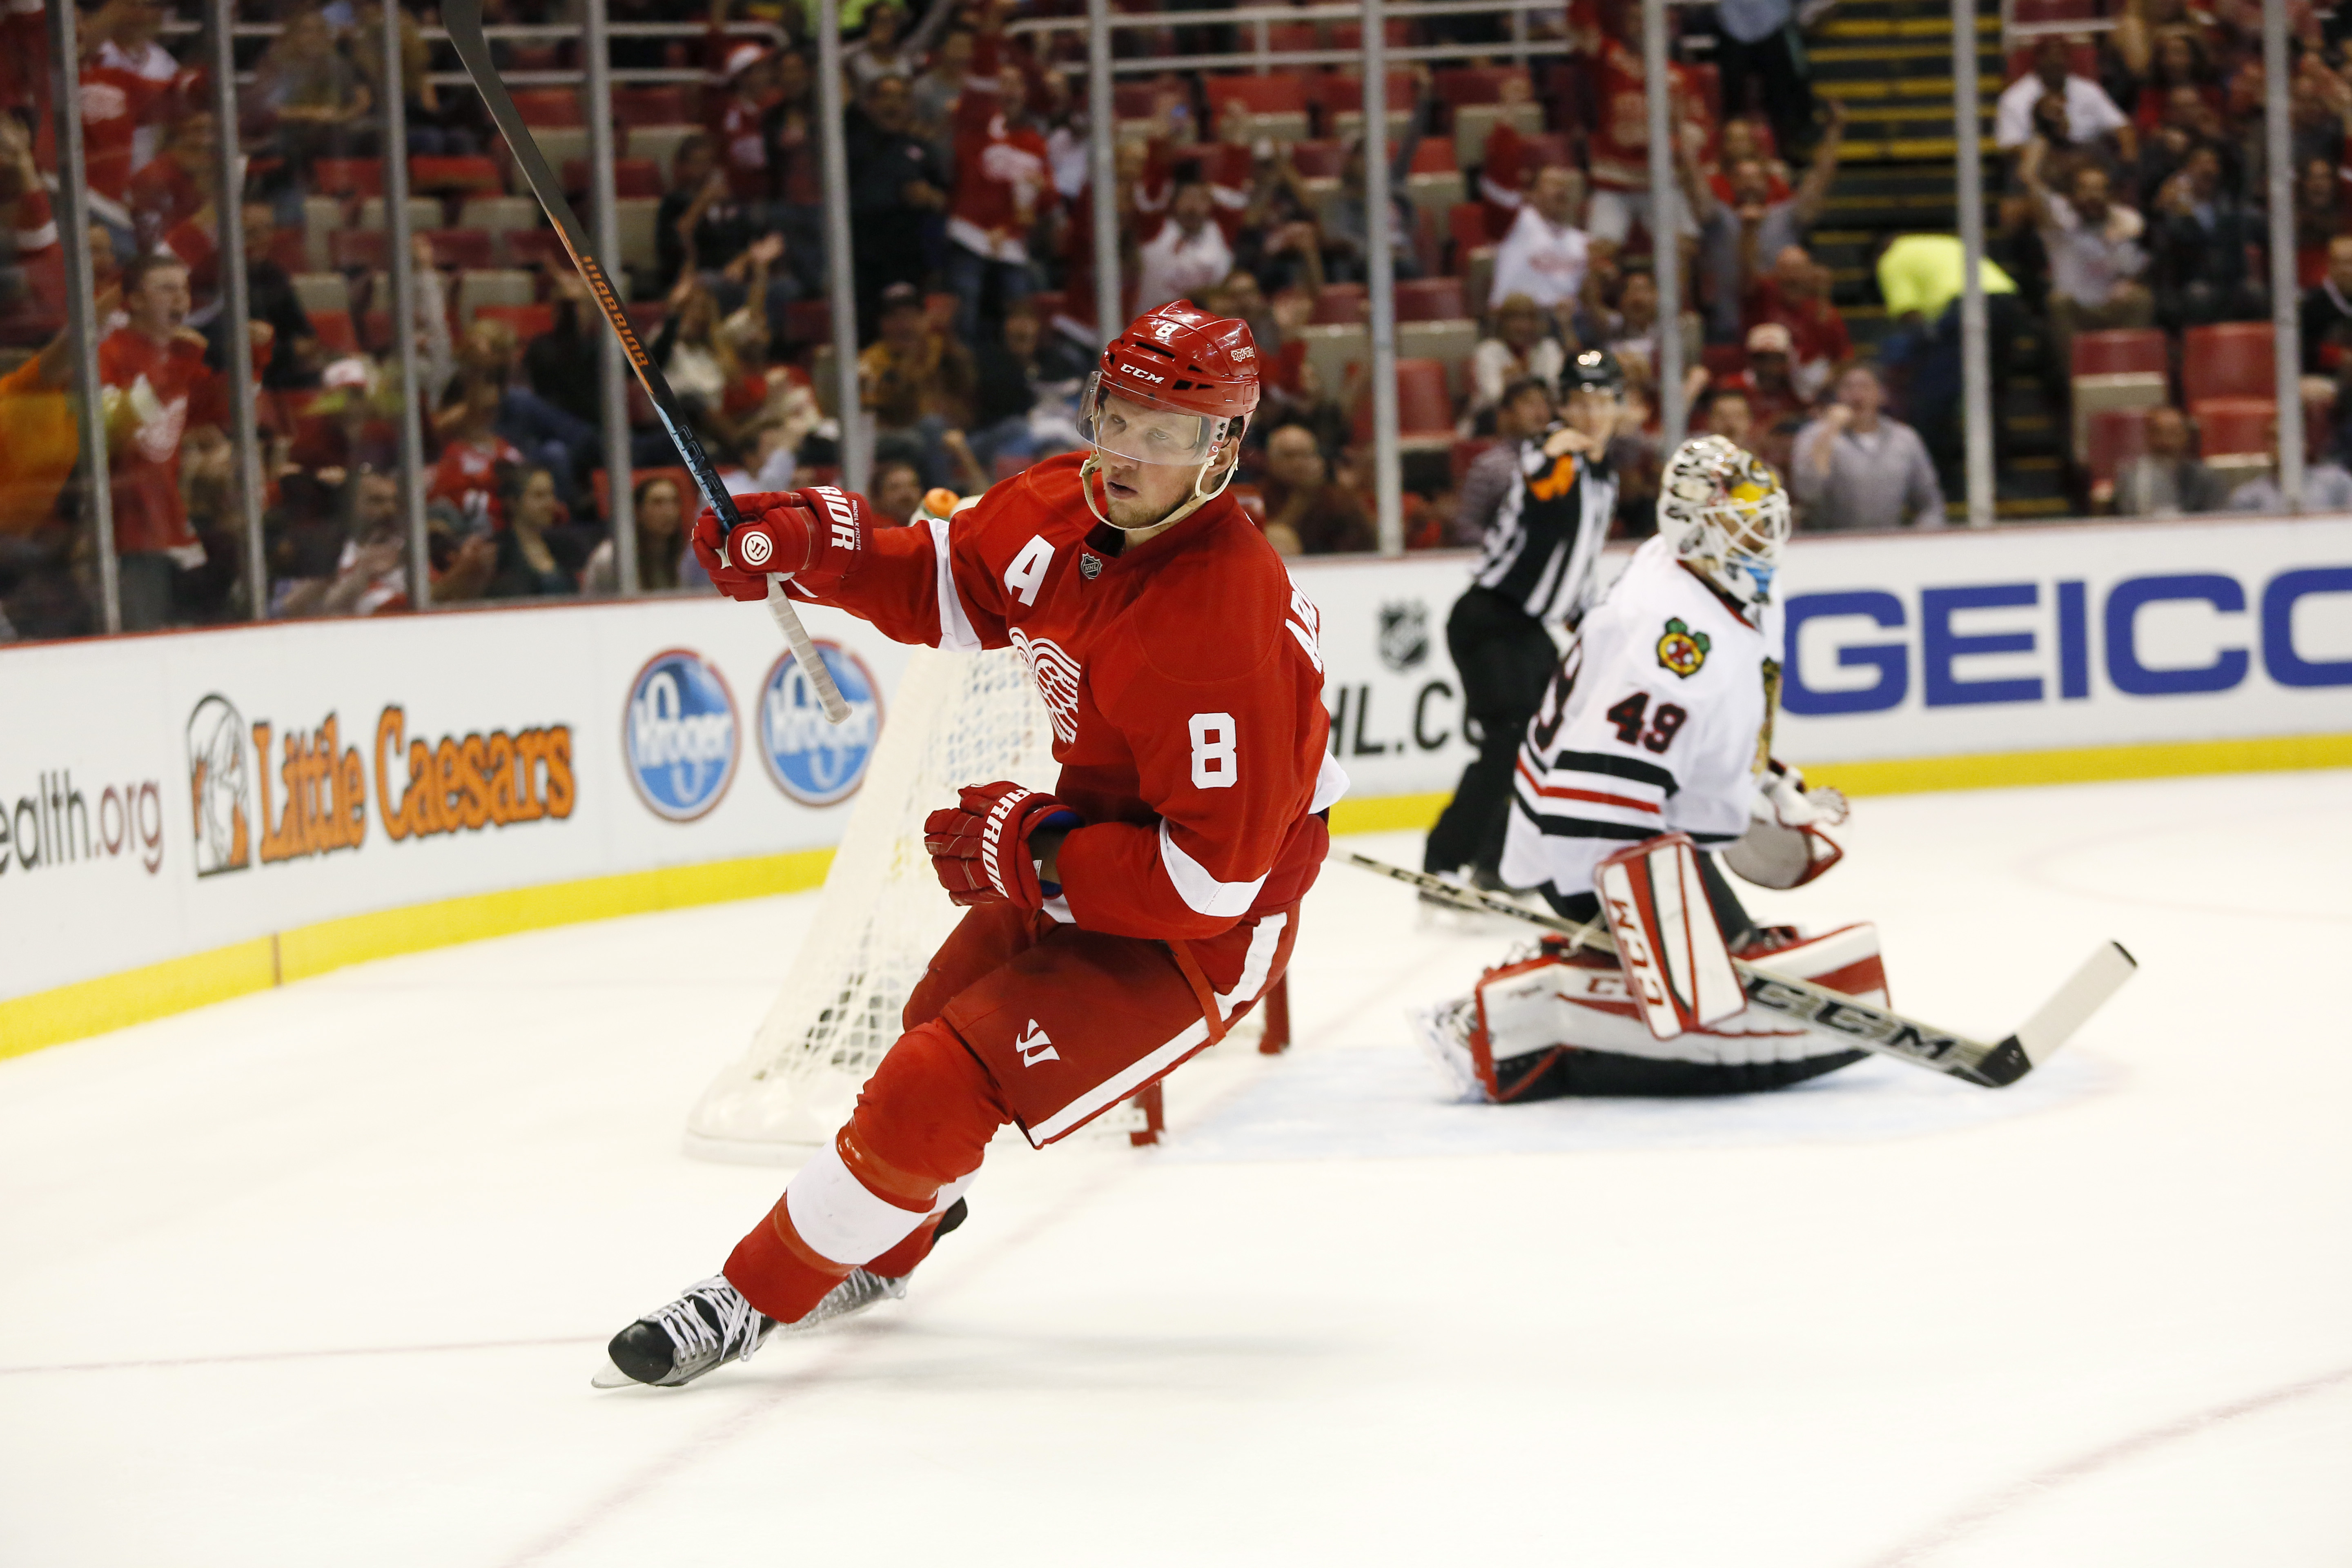 Detroit Red Wings' Justin Abdelkader (8) celebrates his goal against Chicago Blackhawks' Michael Leighton (49) during the second period of a preseason NHL hockey game at Joe Louis Arena Wednesday, Sept. 23, 2015, in Detroit. (AP Photo/Duane Burleson)